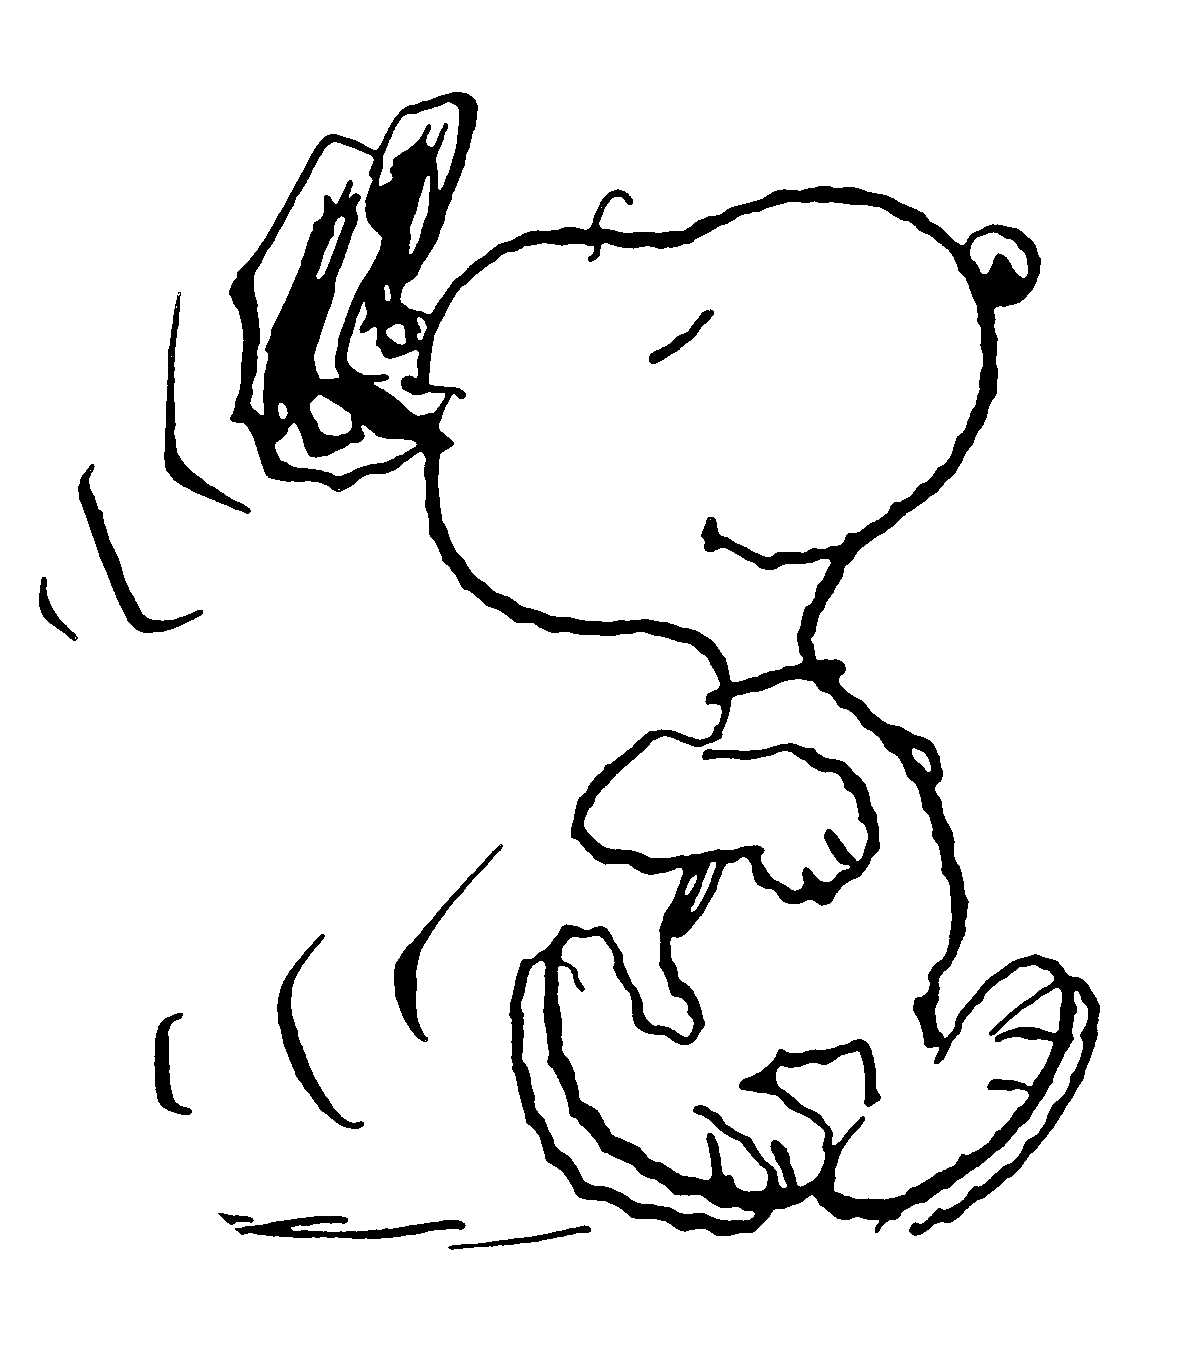 Snoopy clipart black and white Best Clip Snoopy Clipart Snoopy